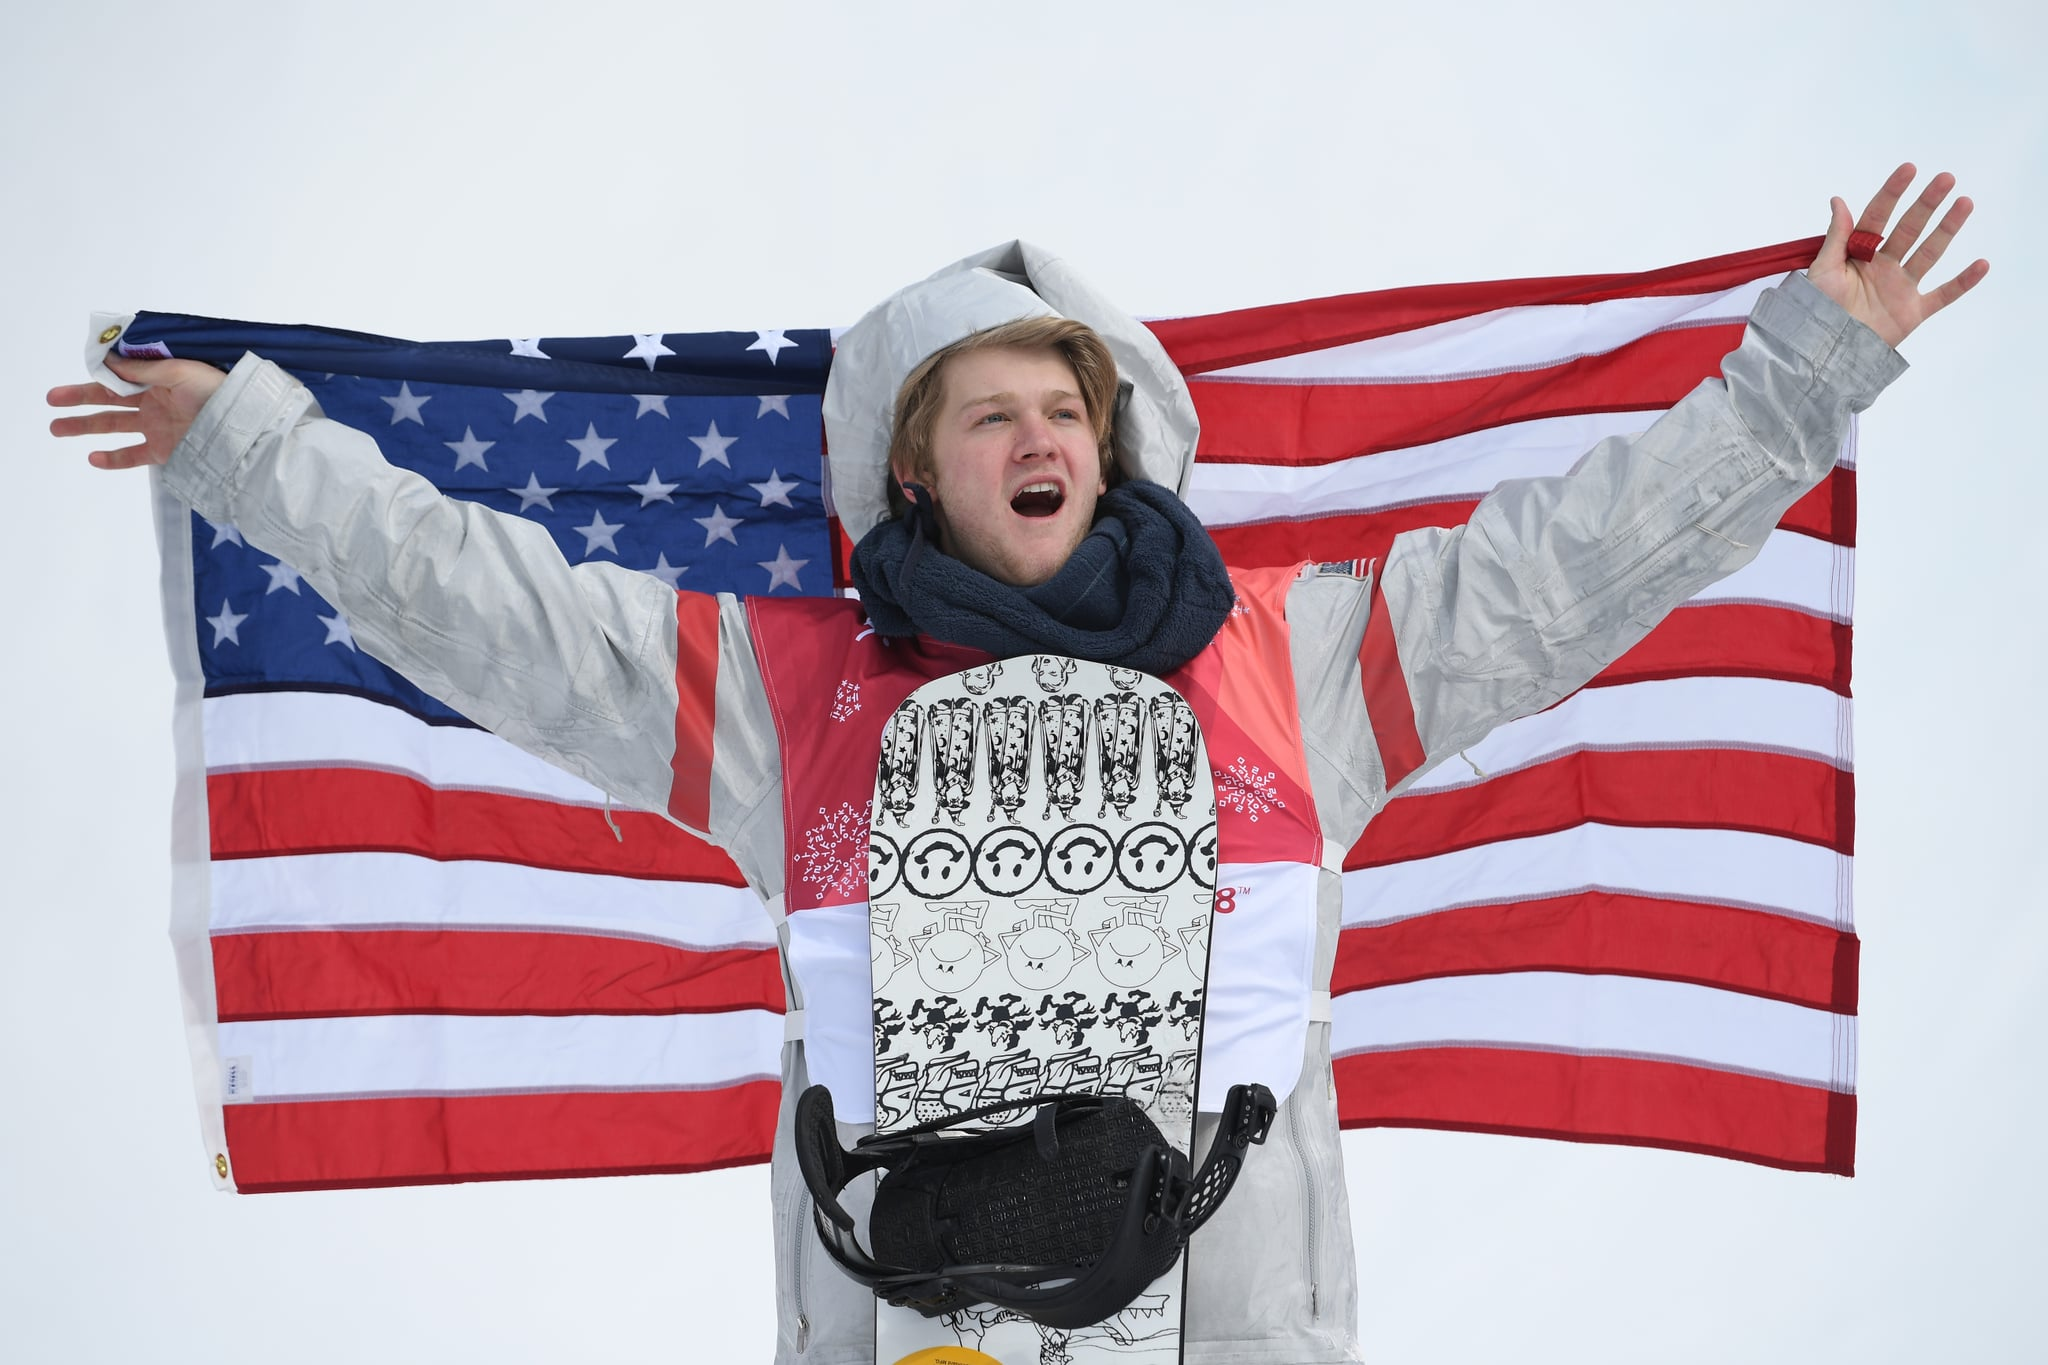 February 22 Olympics: US snowboarders go for gold in big air